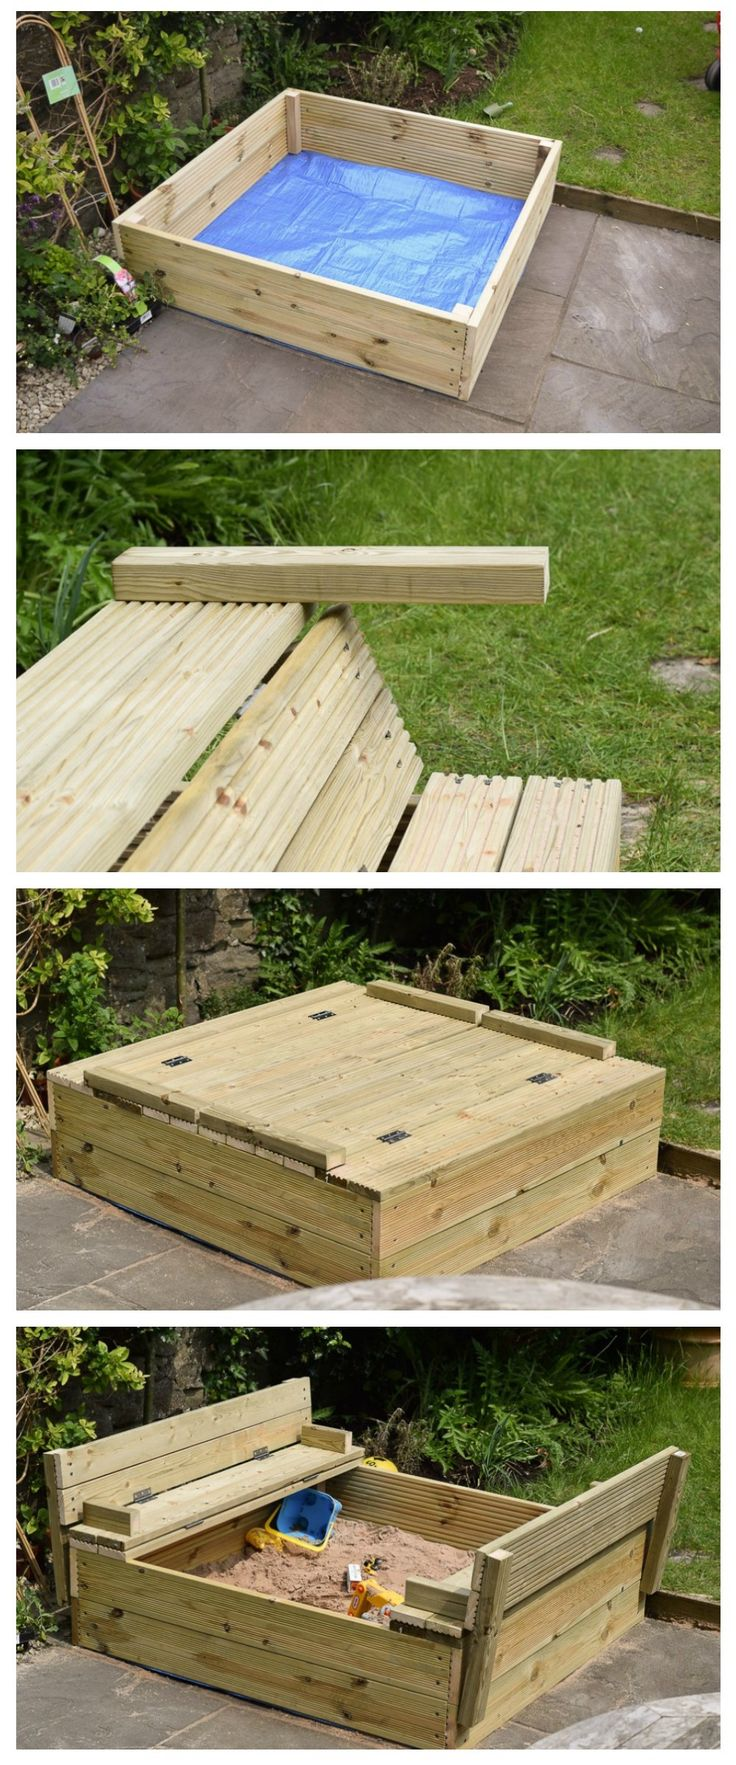 DIY Woodworking Ideas Easy DIY wooden sandpit with fold out benches made with decking boards and a she...